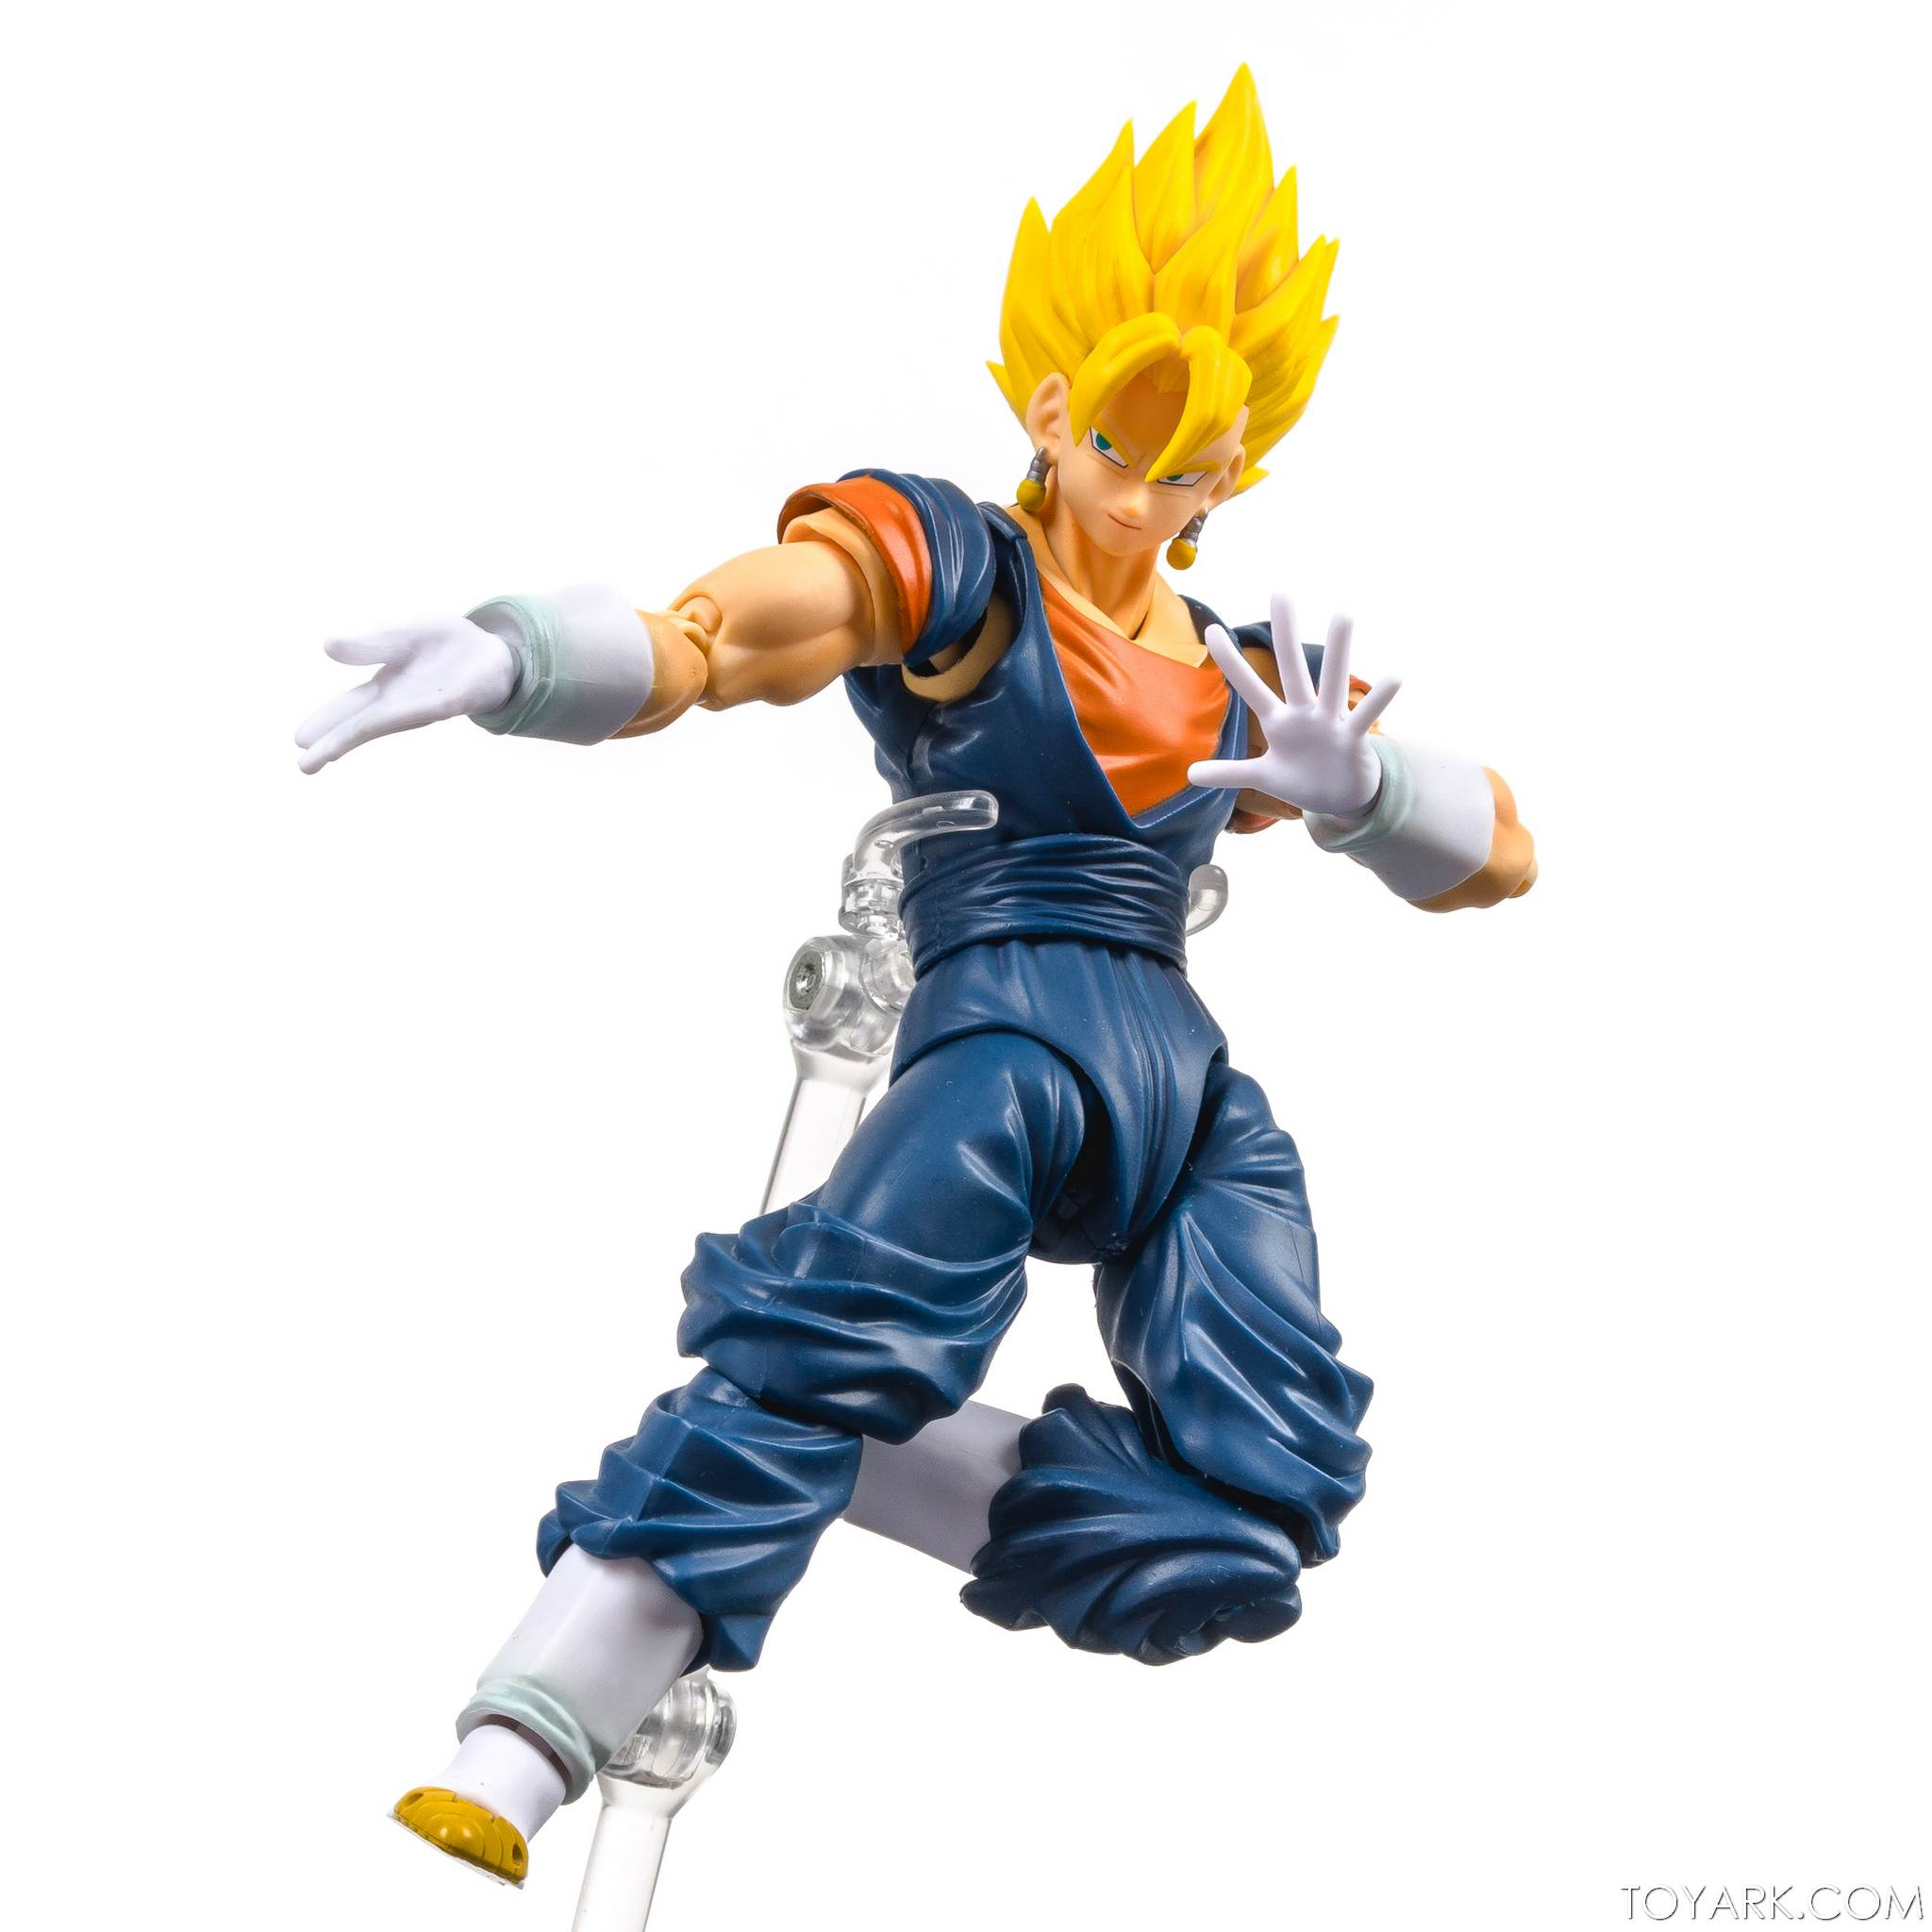 S.H. Figuarts Dragonball Z Vegetto Gallery - The Toyark - News